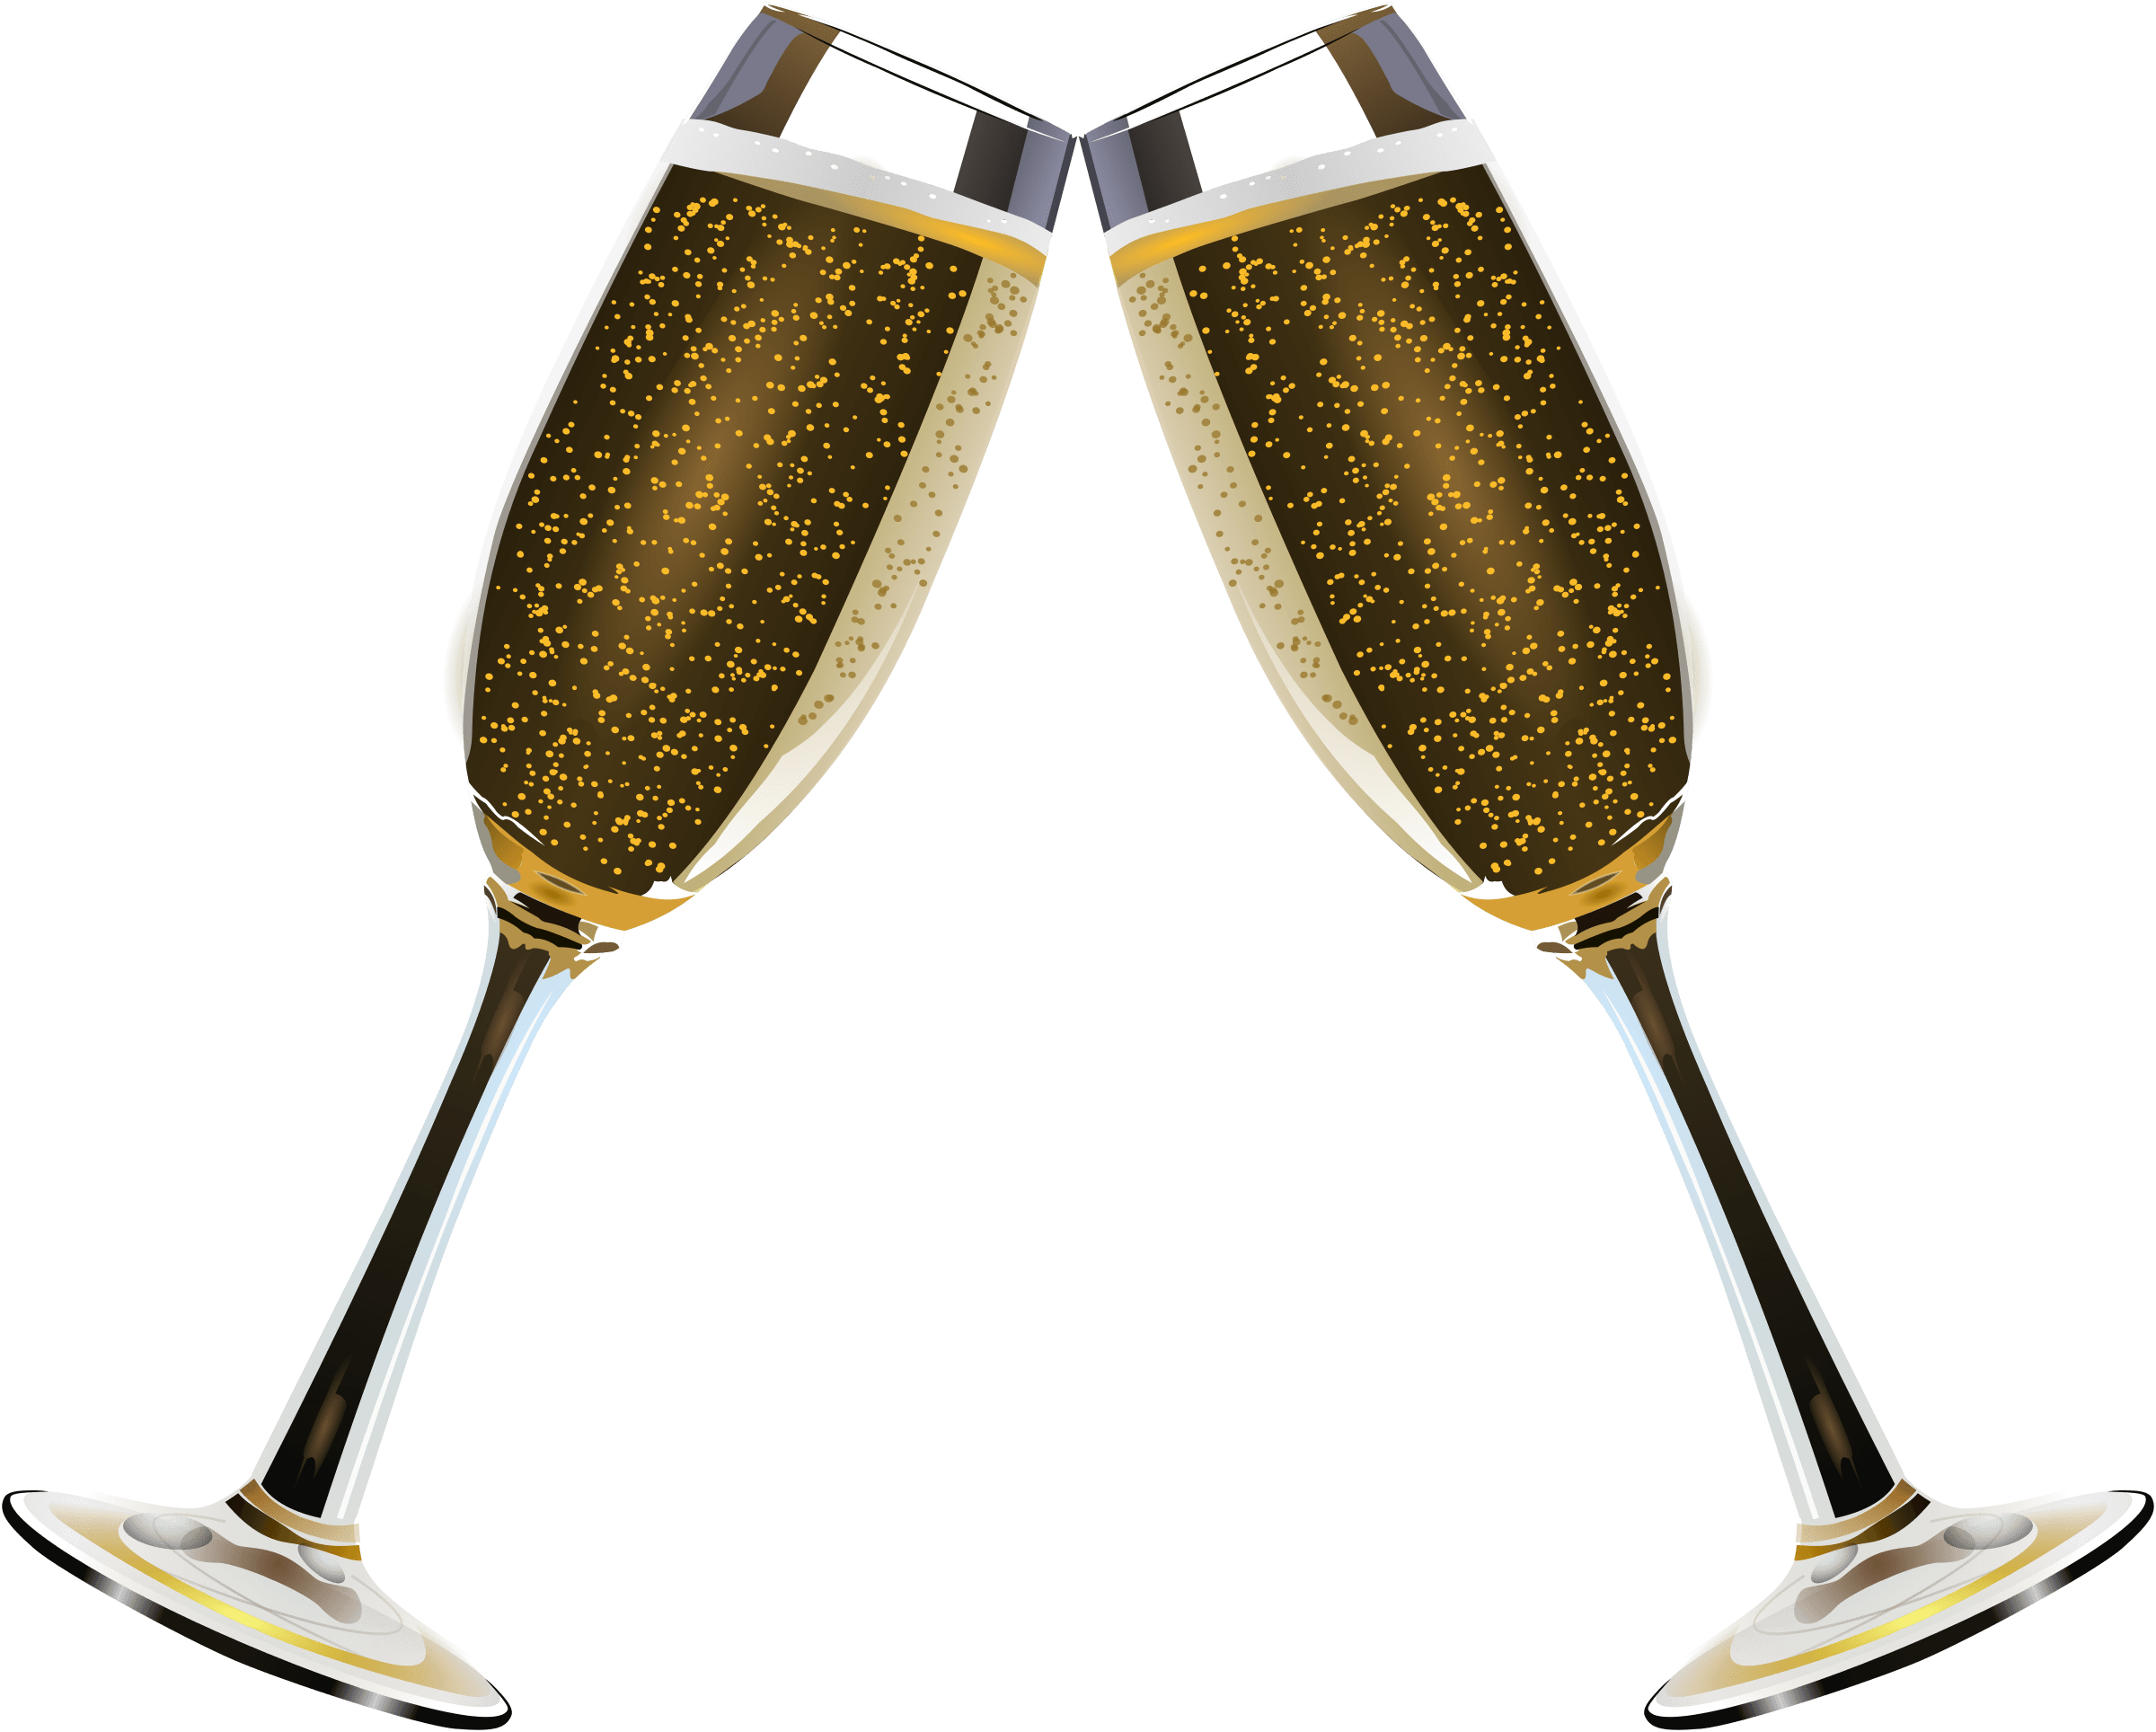 png black and white stock Champagne clipart glassware. Duo of glasses transparent.